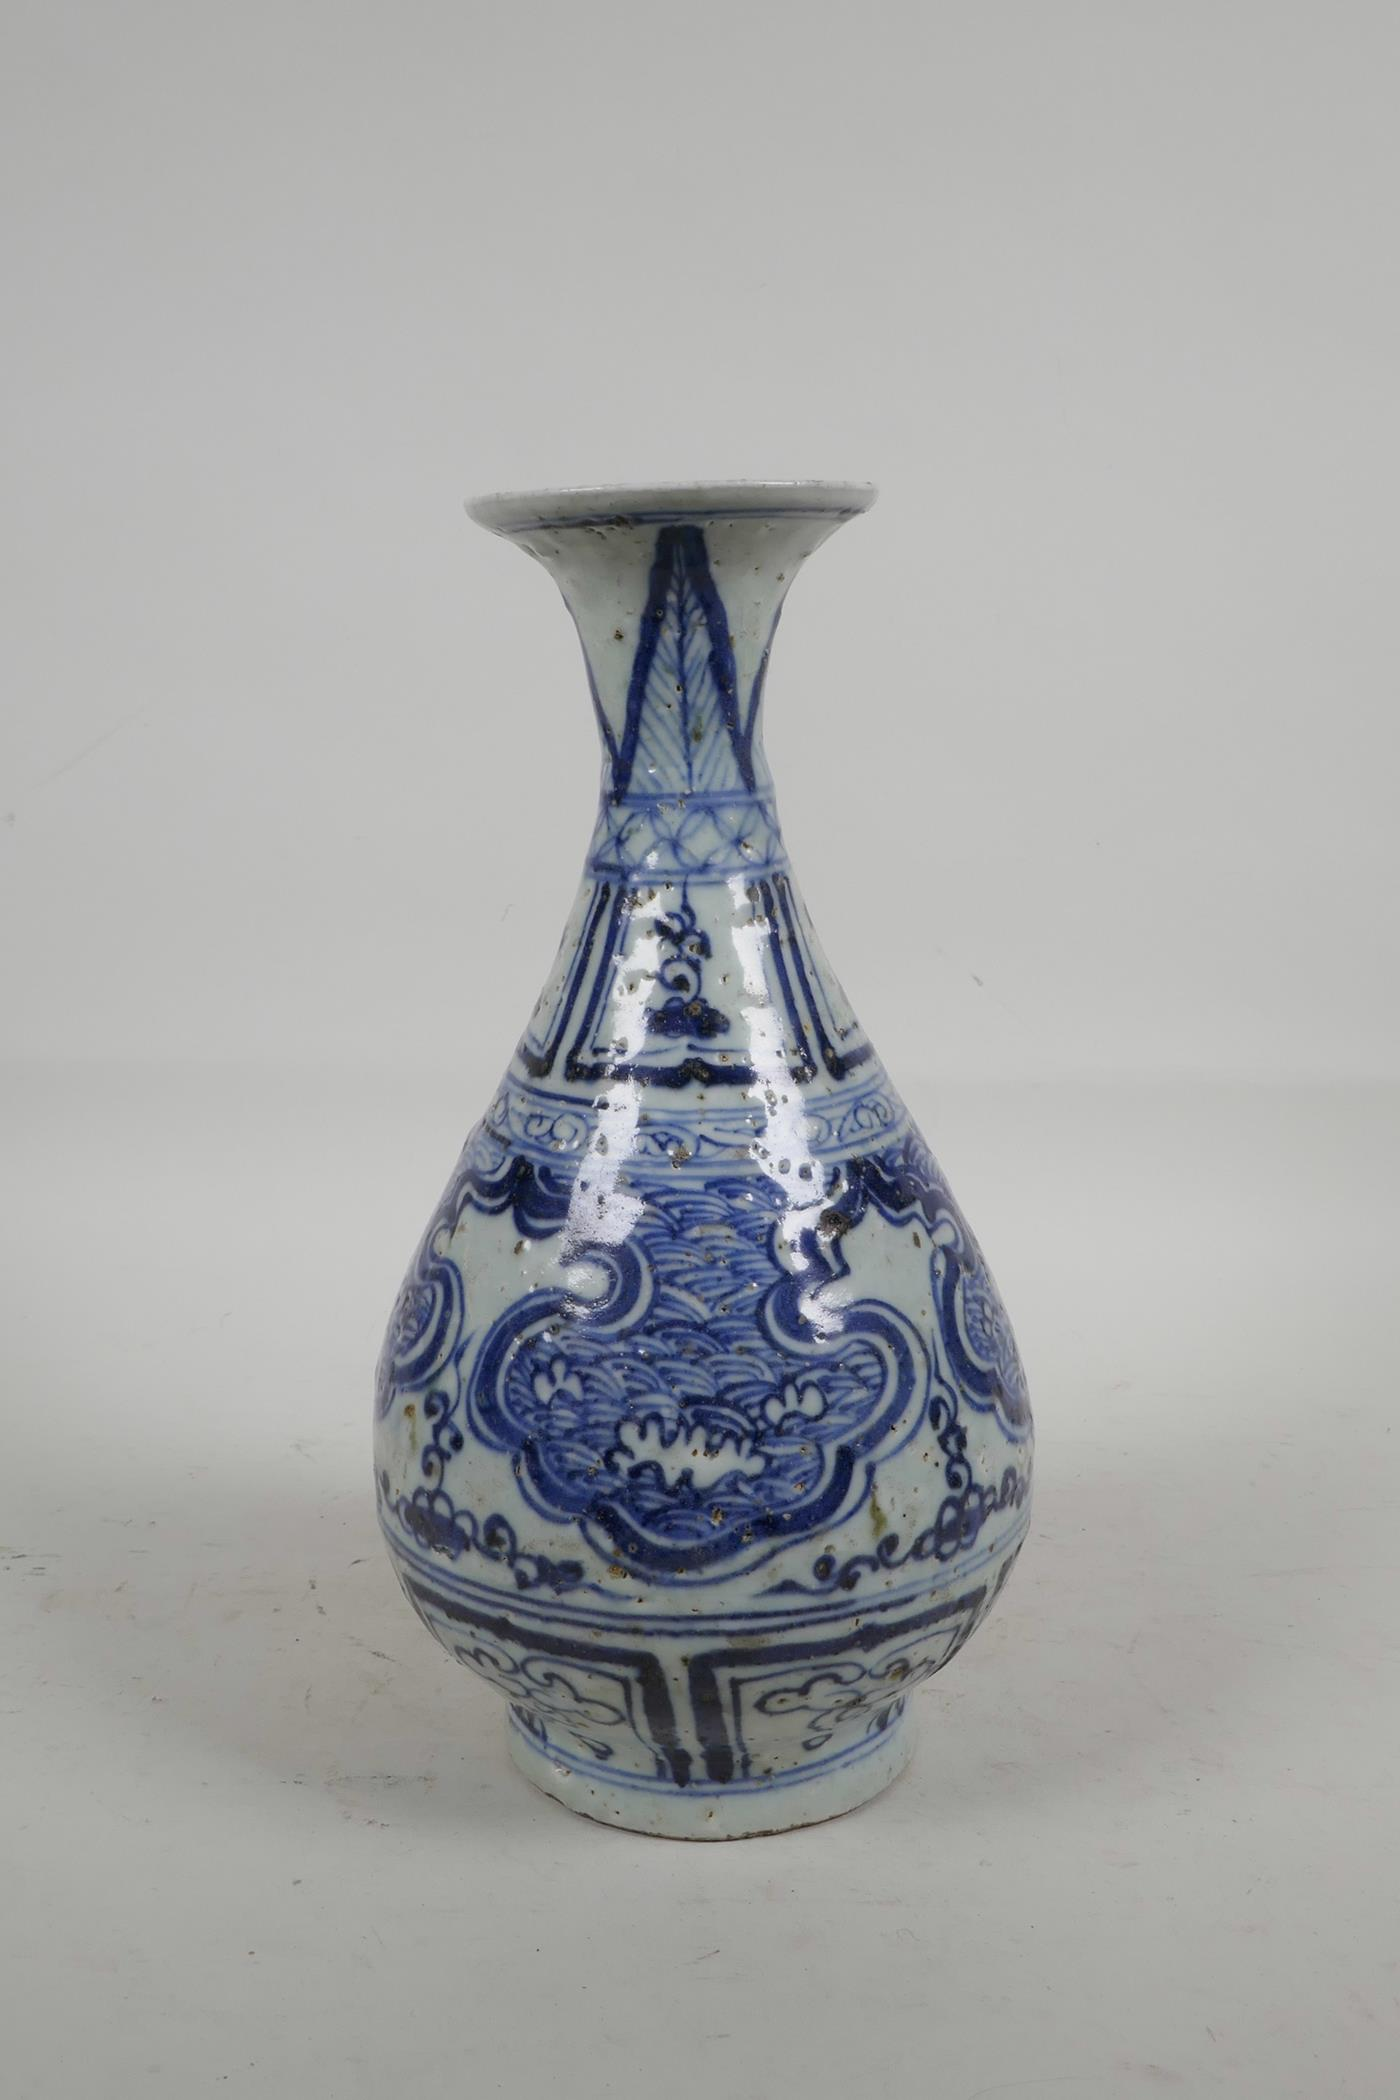 Lot 24 - A Chinese blue and white porcelain pear shaped vase with flared rim and stylised decoration, 10""